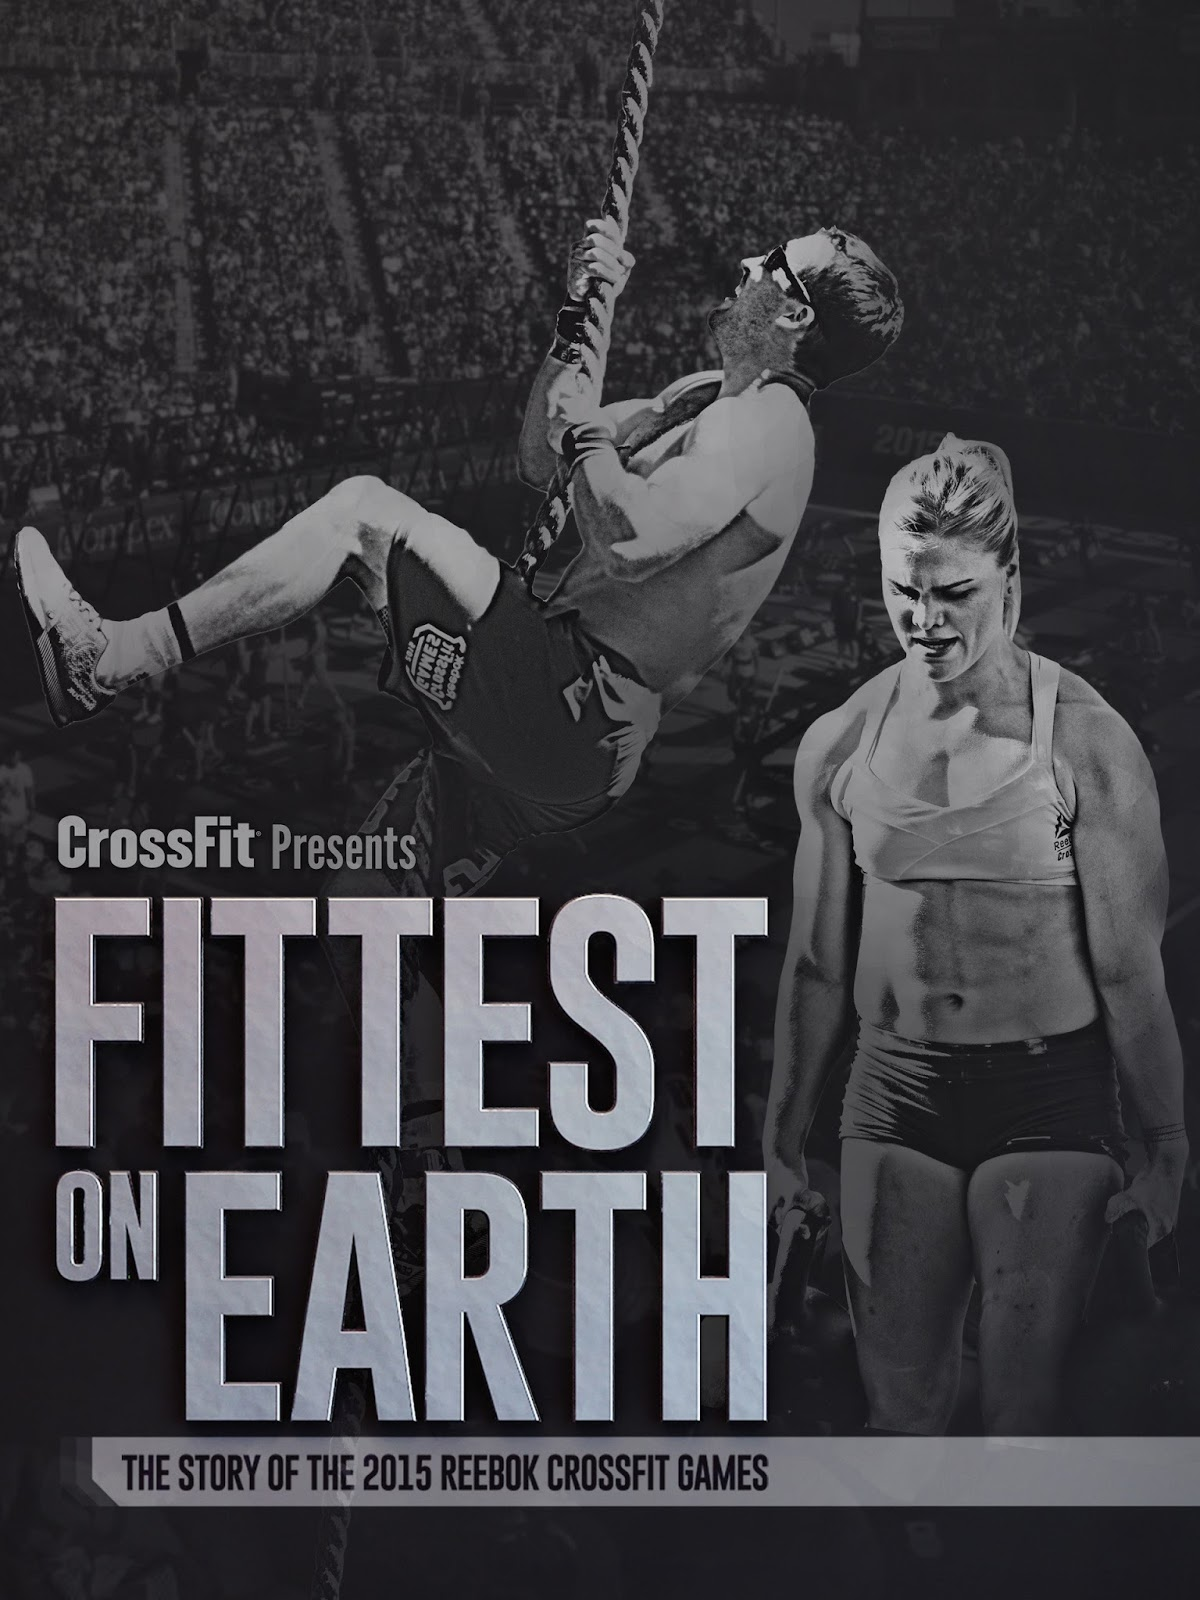 Fittest On Earth (The Story of the 2015 Reebok CrossFit Games) ταινιες online seires xrysoi greek subs